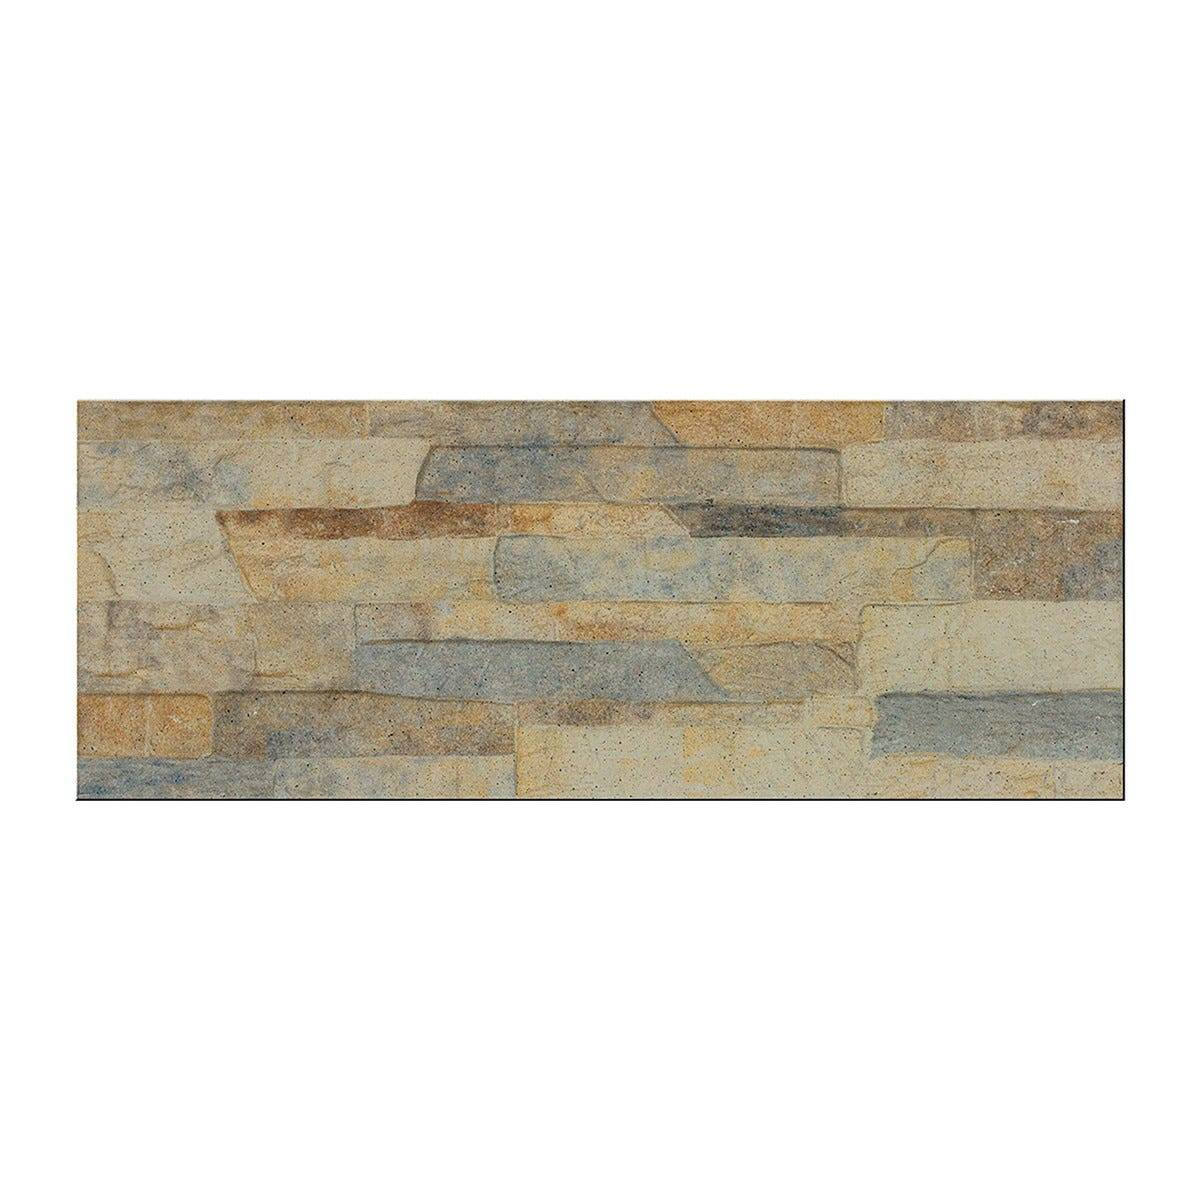 Oregon Placchetta Oregon Beige 7,5x38,5x0,9 Cm Pei 4 R10 Gres Porcellanato